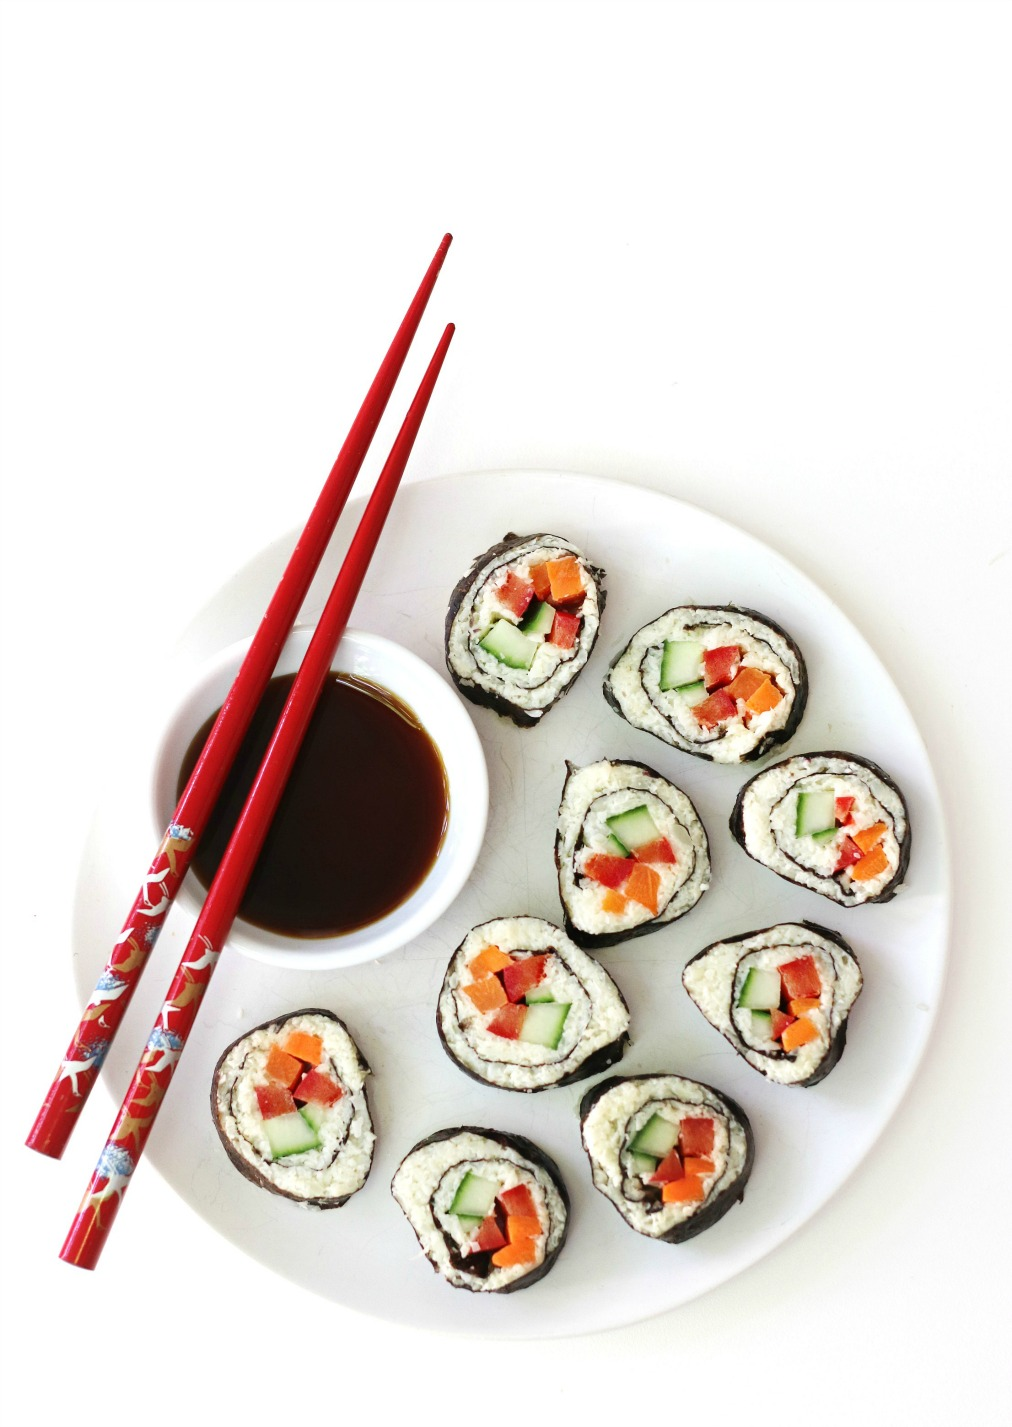 Cali'flour Kitchen cream cheese sushi rolls try small things